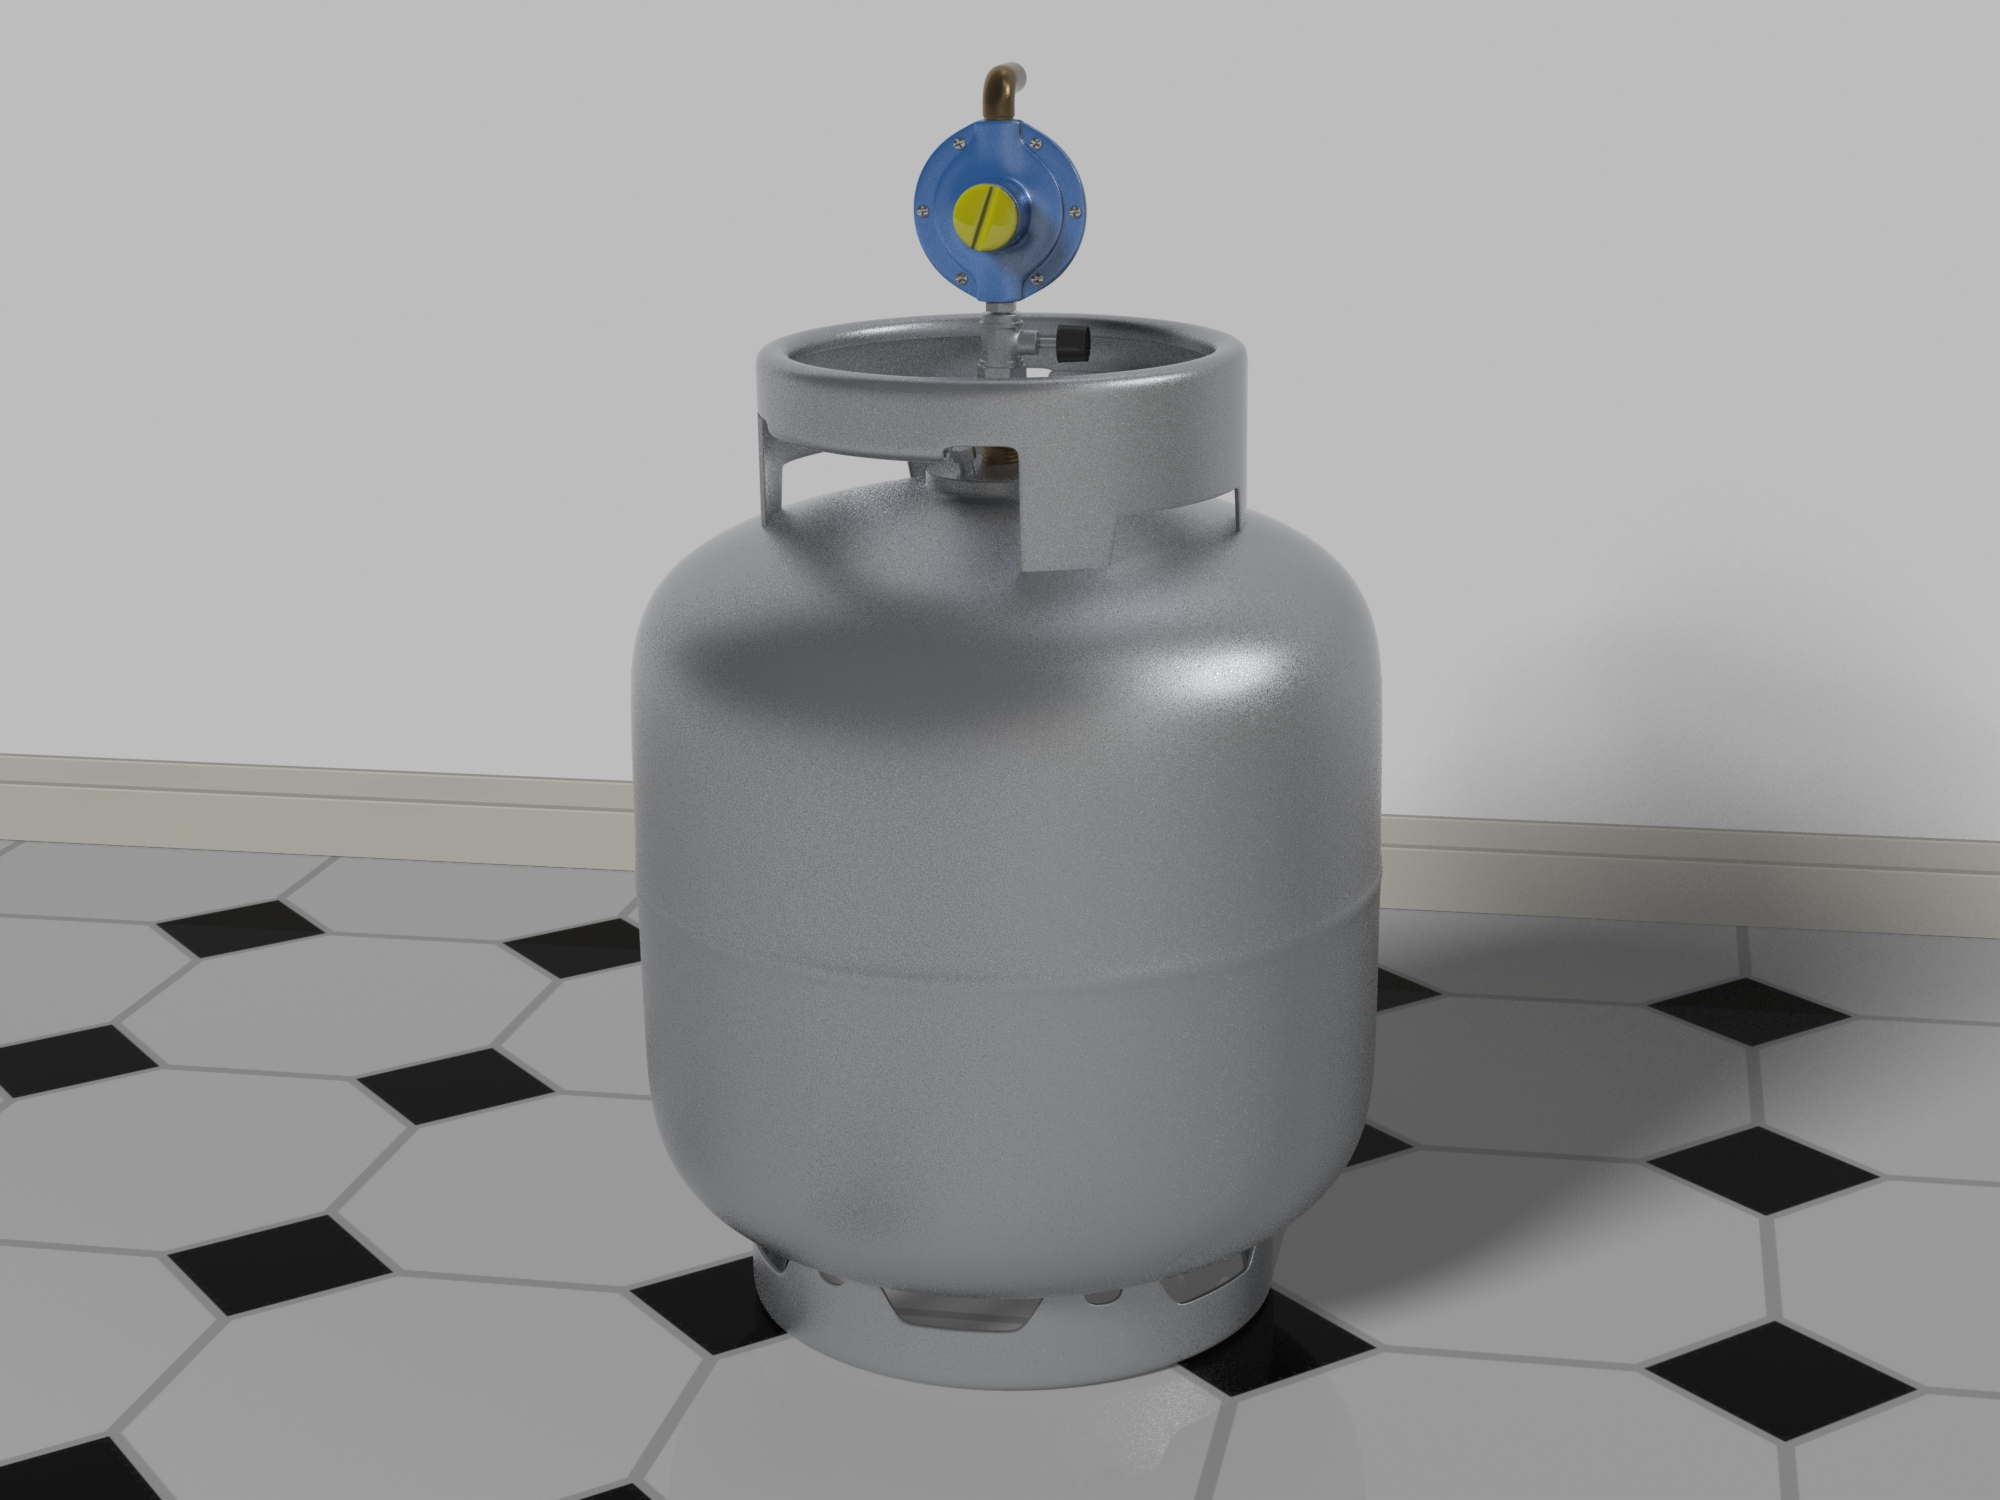 gas bote na may regulator 3d modelo max fbx c4d lxo 268063